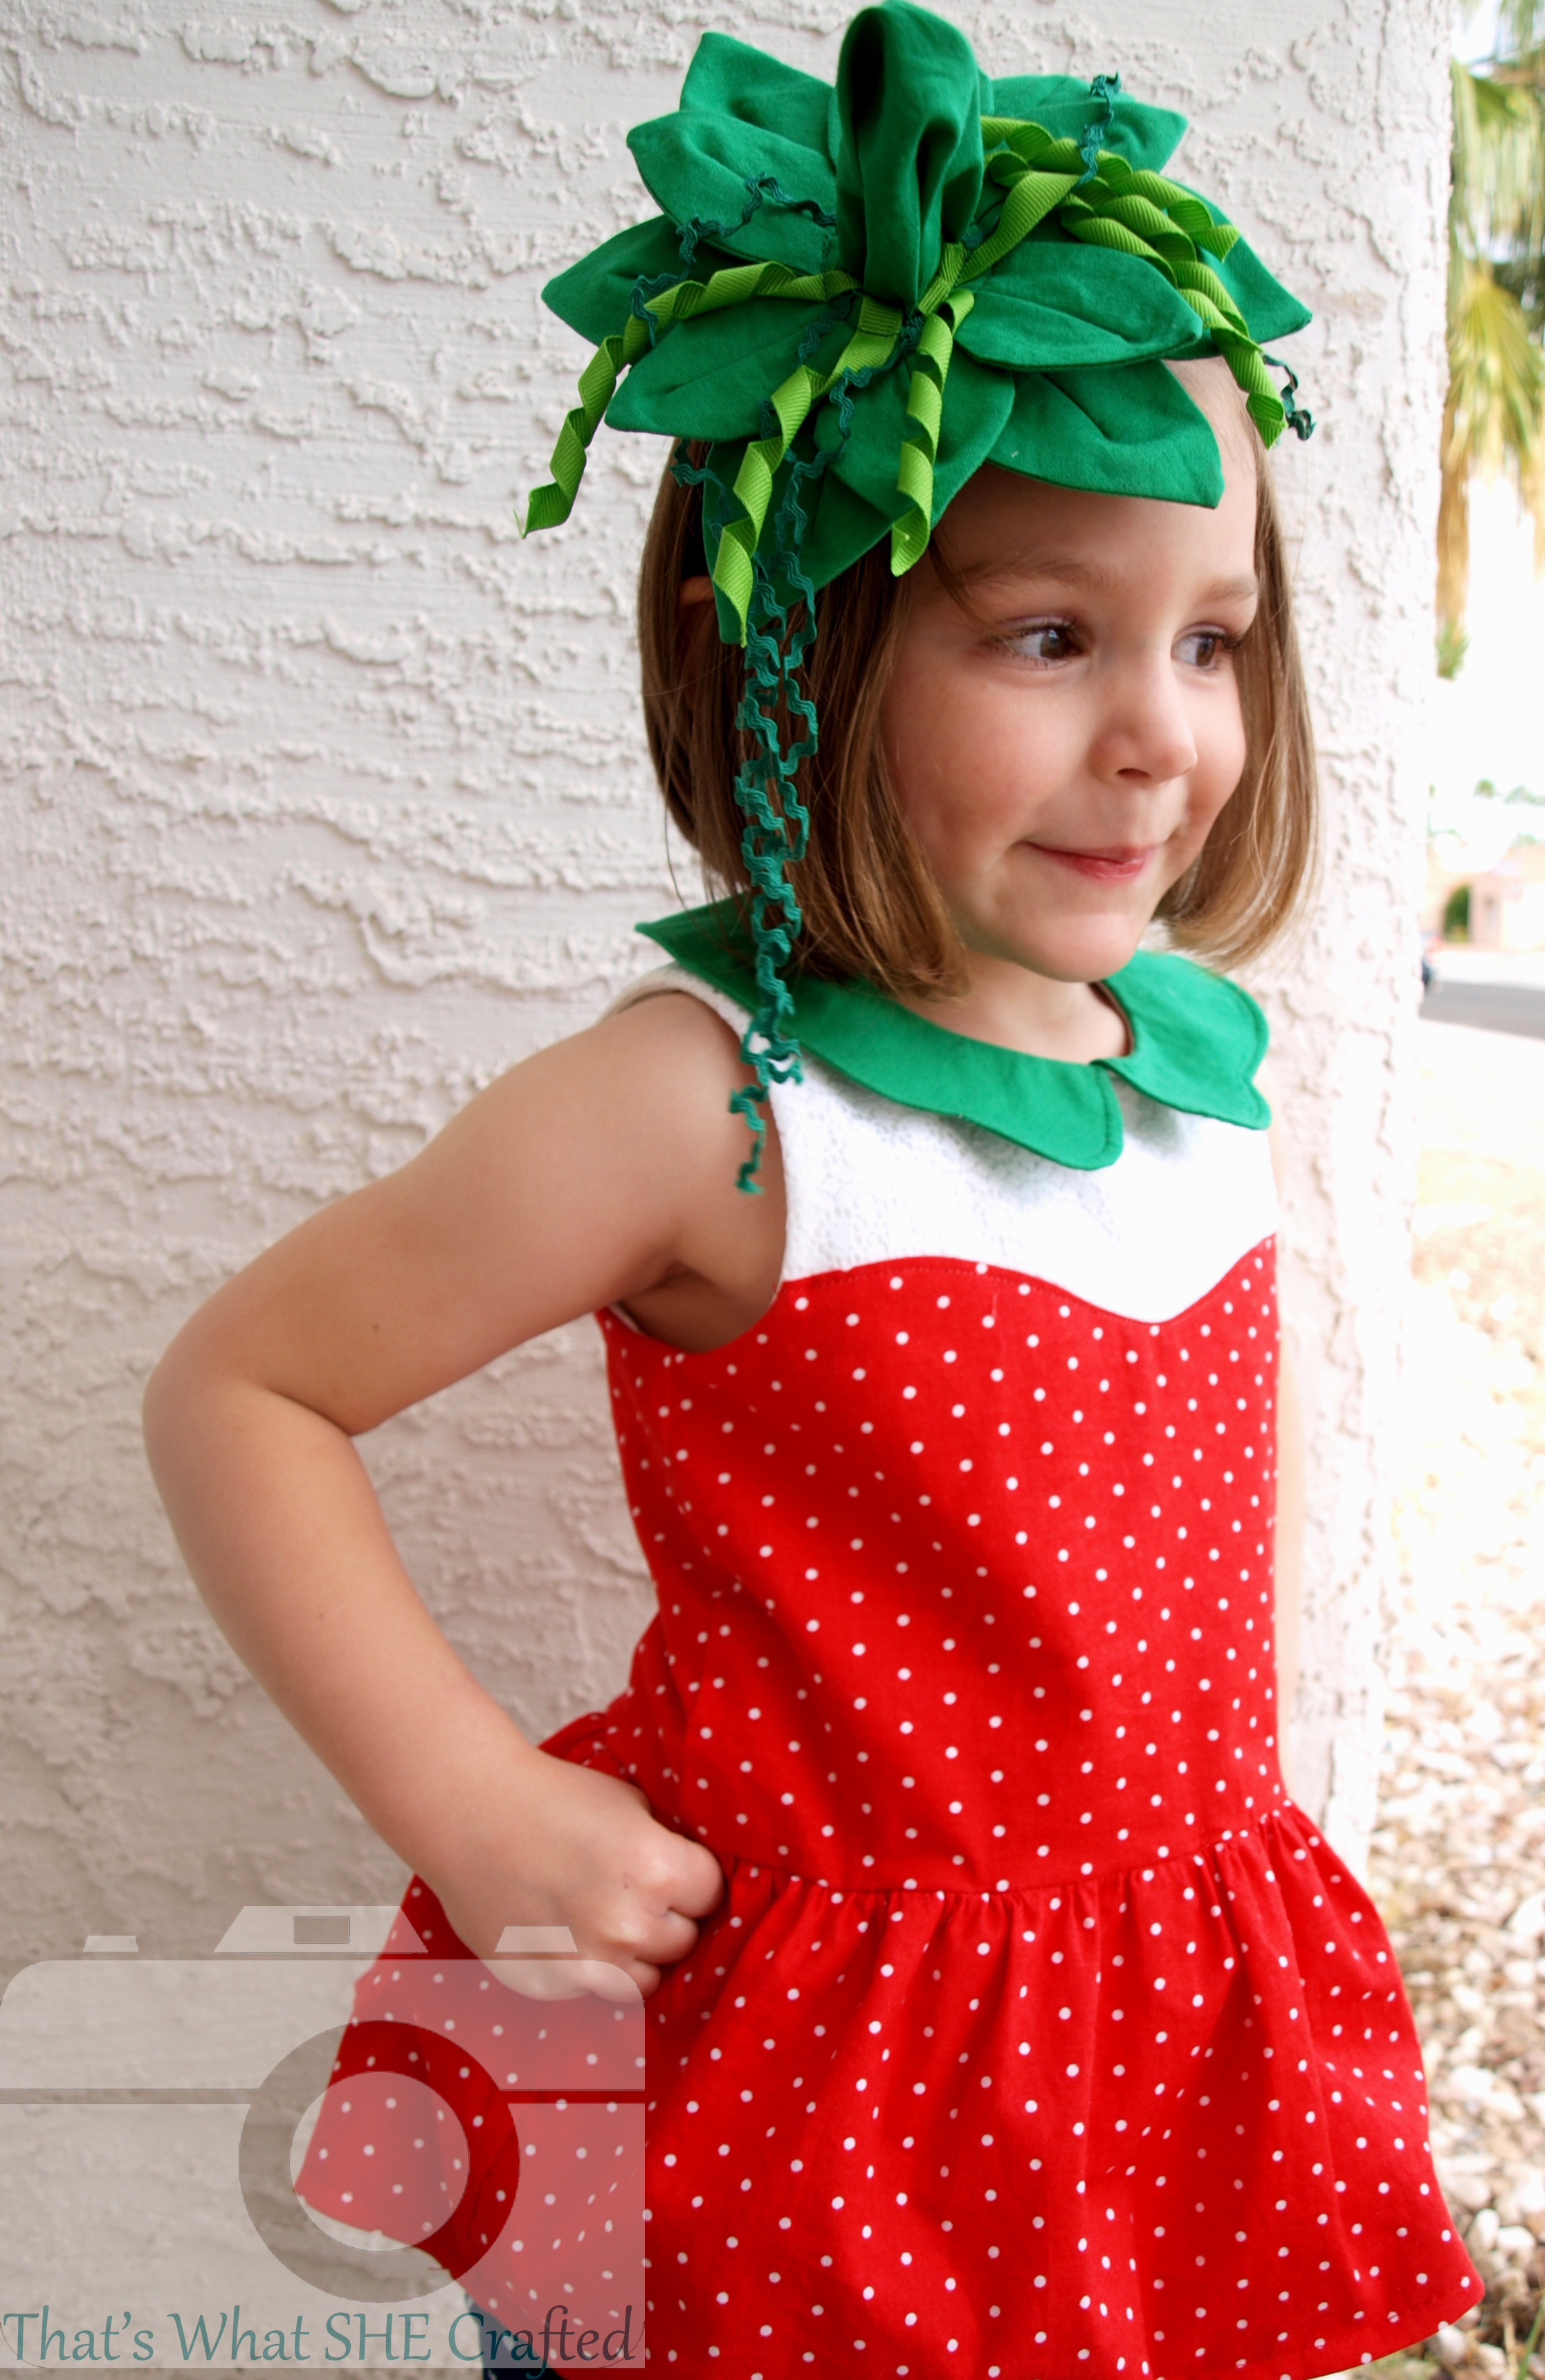 Sheu0027s a Strawberry! Thank baby Jesus that My Little Plumcake released this awesome pattern just in time. Itu0027s called the Cordelia Sweetheart Peplum Top.  sc 1 st  Thatu0027s What She Crafted & Thatu0027s What She Crafted: Pattern Review Halloween Style: My Little ...